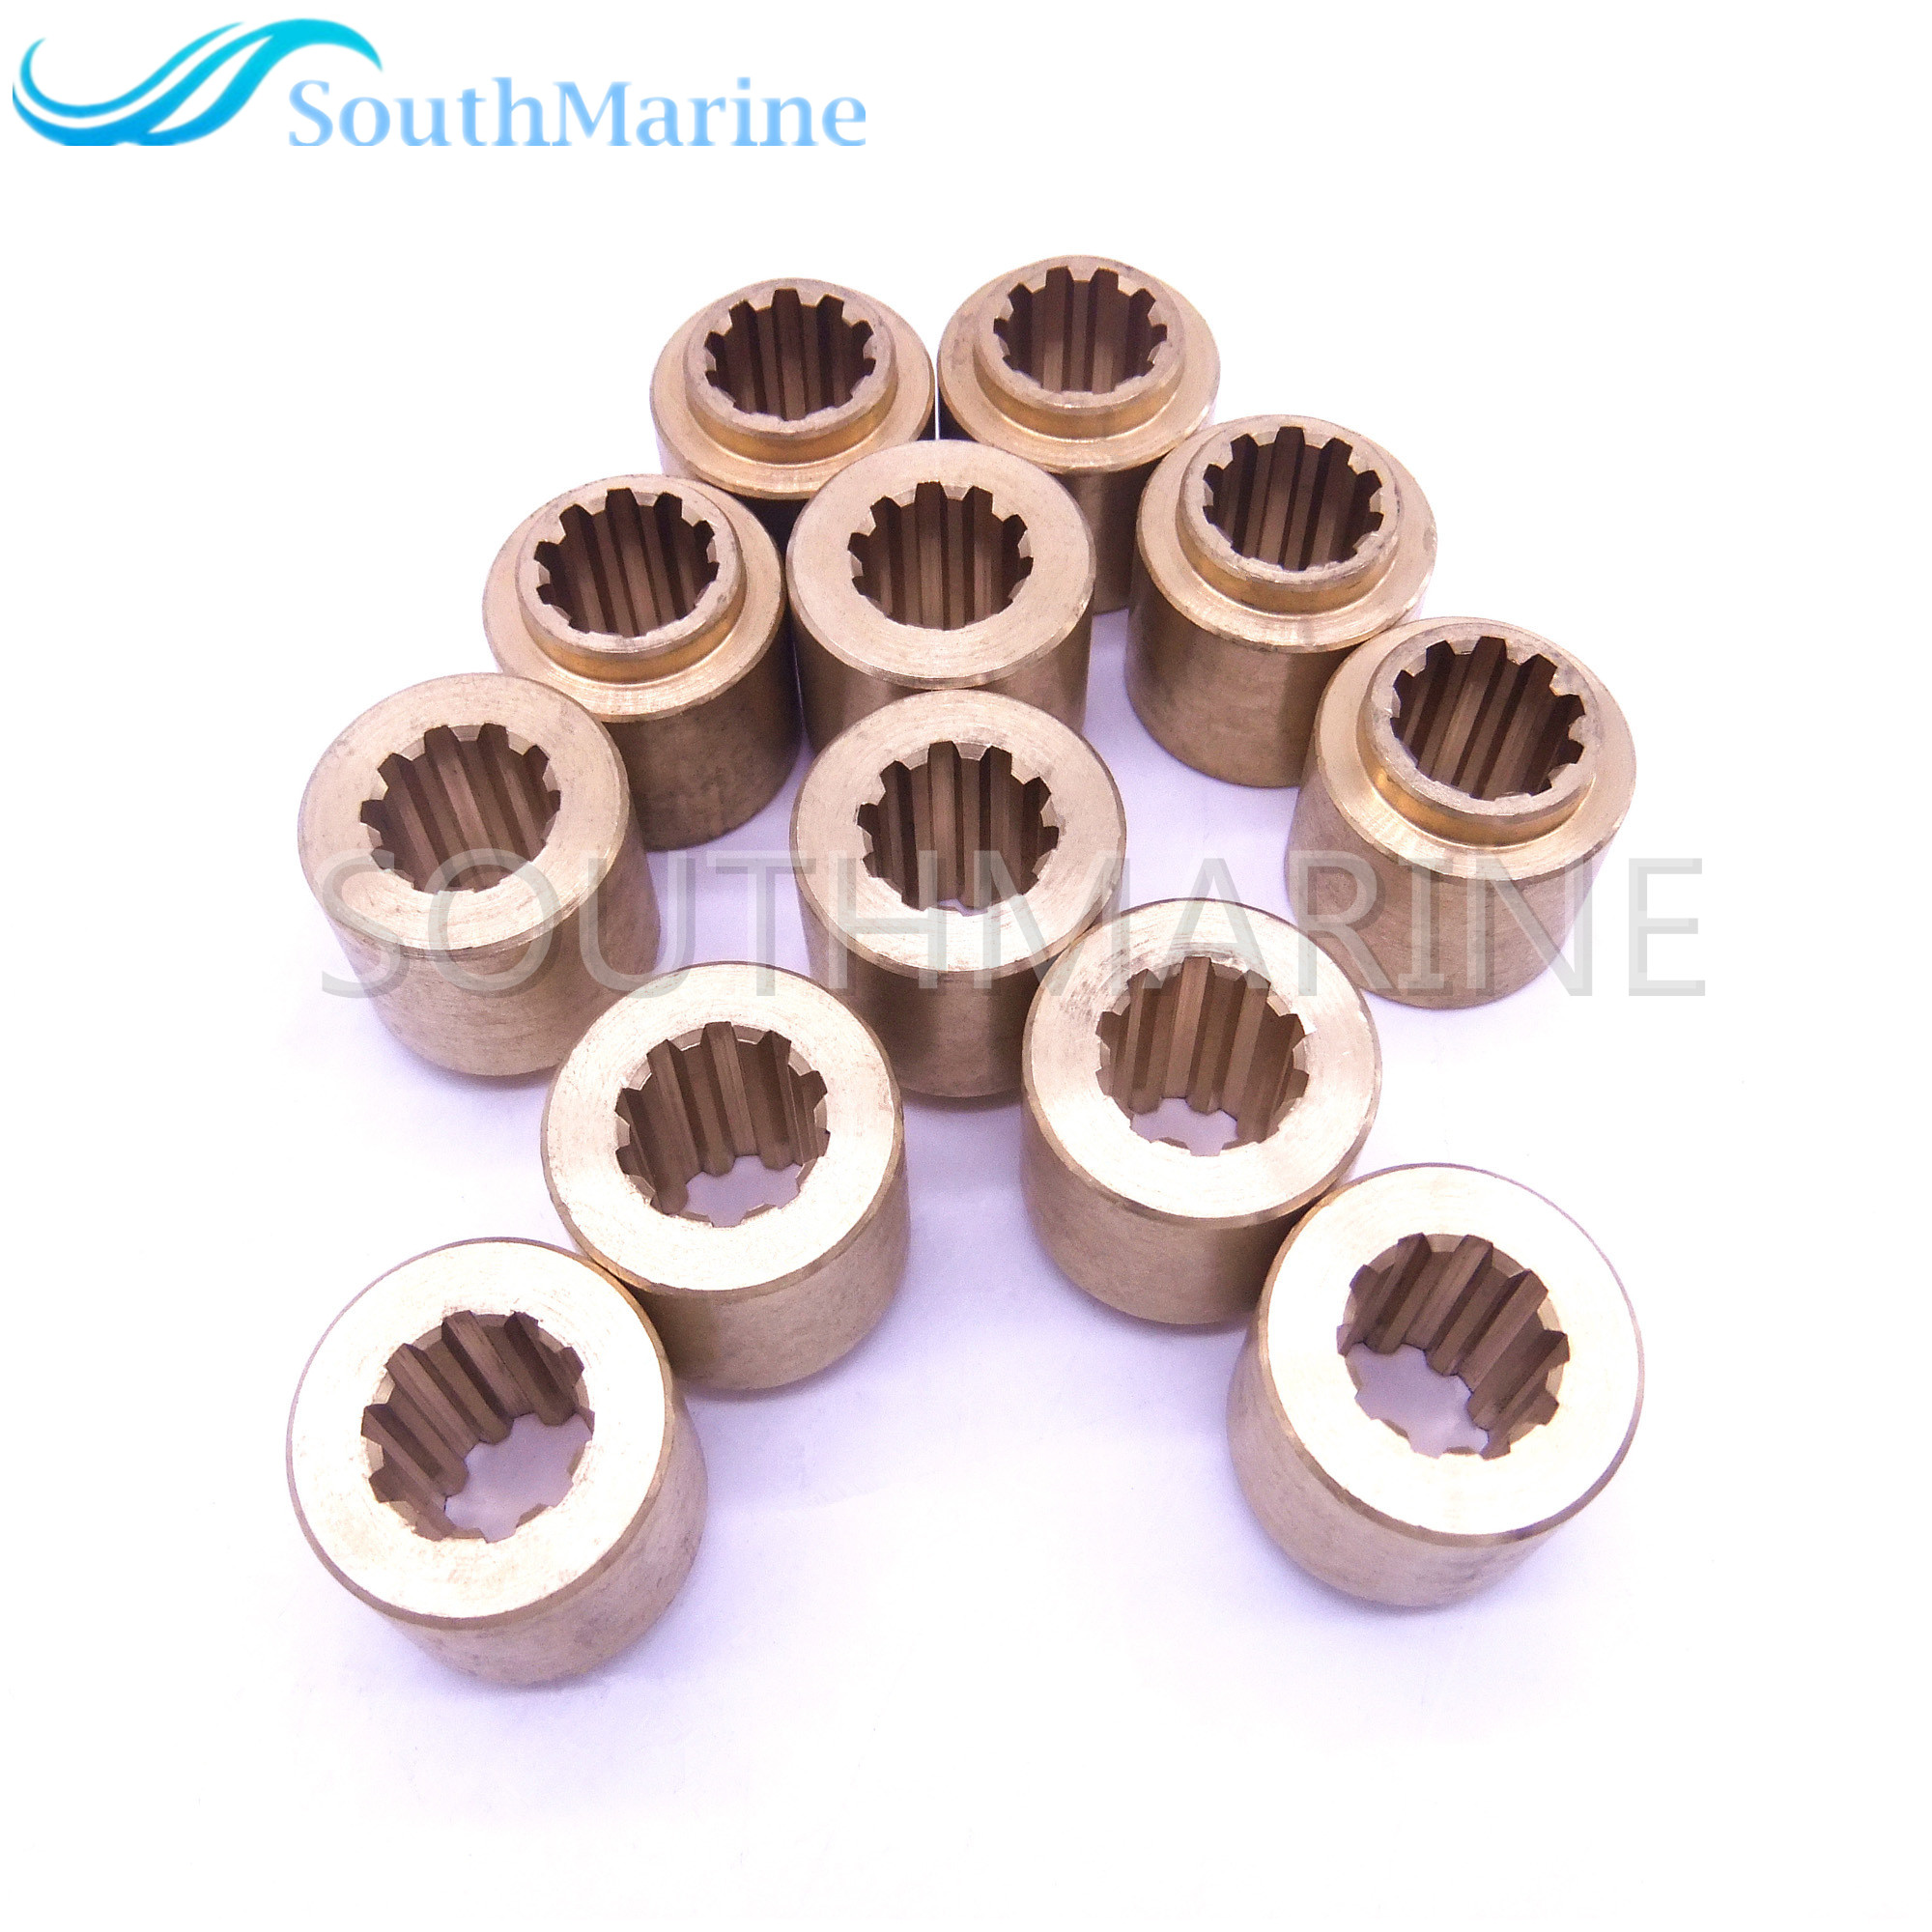 689-45997-00 Outboard Propeller Spacer For Yamaha Parsun HDX Hidea Boat Motor